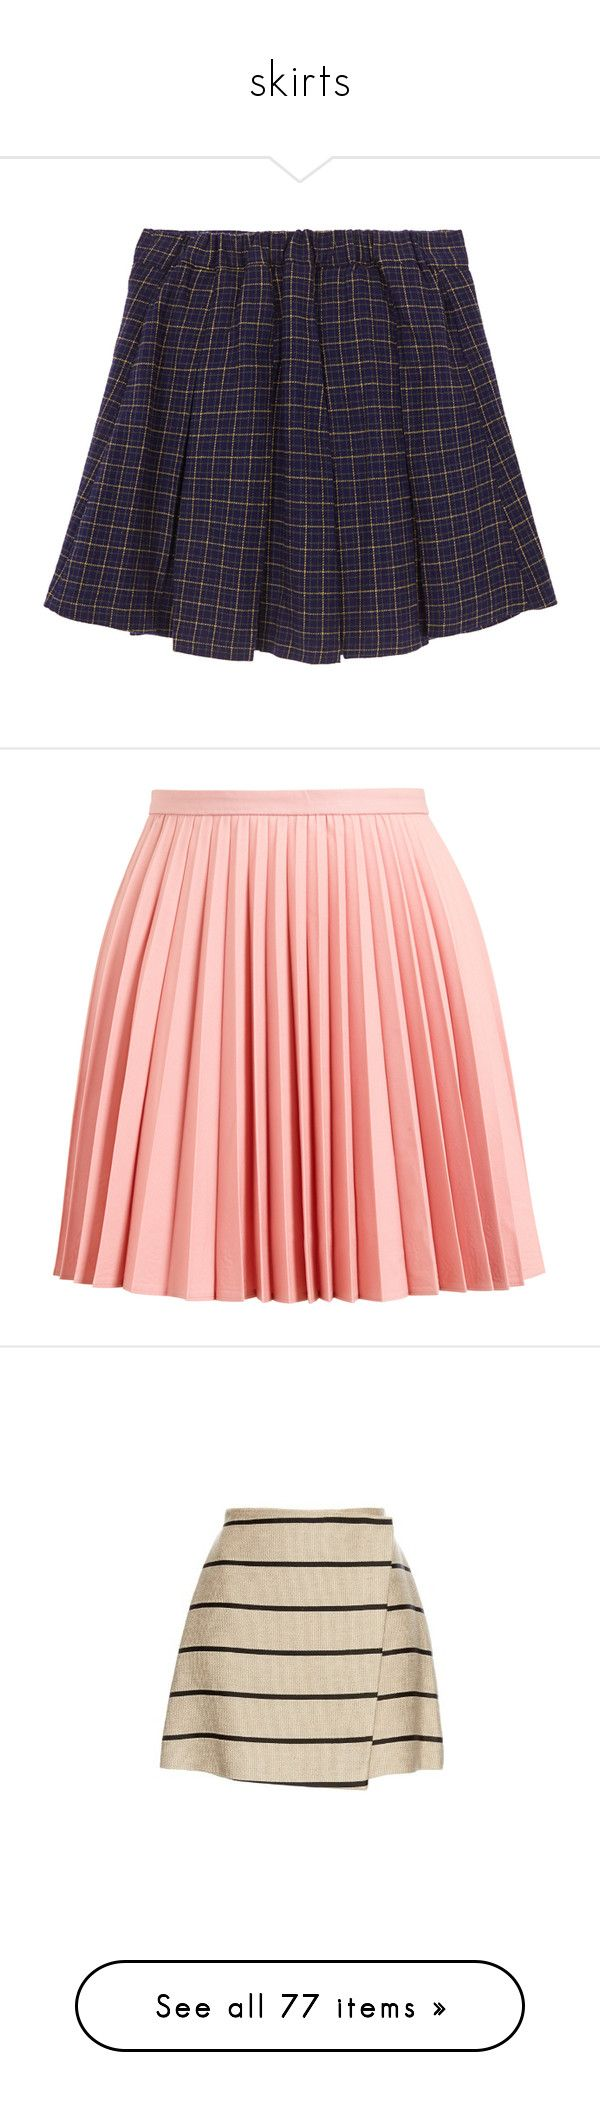 """""""skirts"""" by pasteldemerme ❤ liked on Polyvore featuring skirts, mini skirts, red, women, red mini skirt, superdry, red a line skirt, checkered skirt, mini skirt and bottoms"""